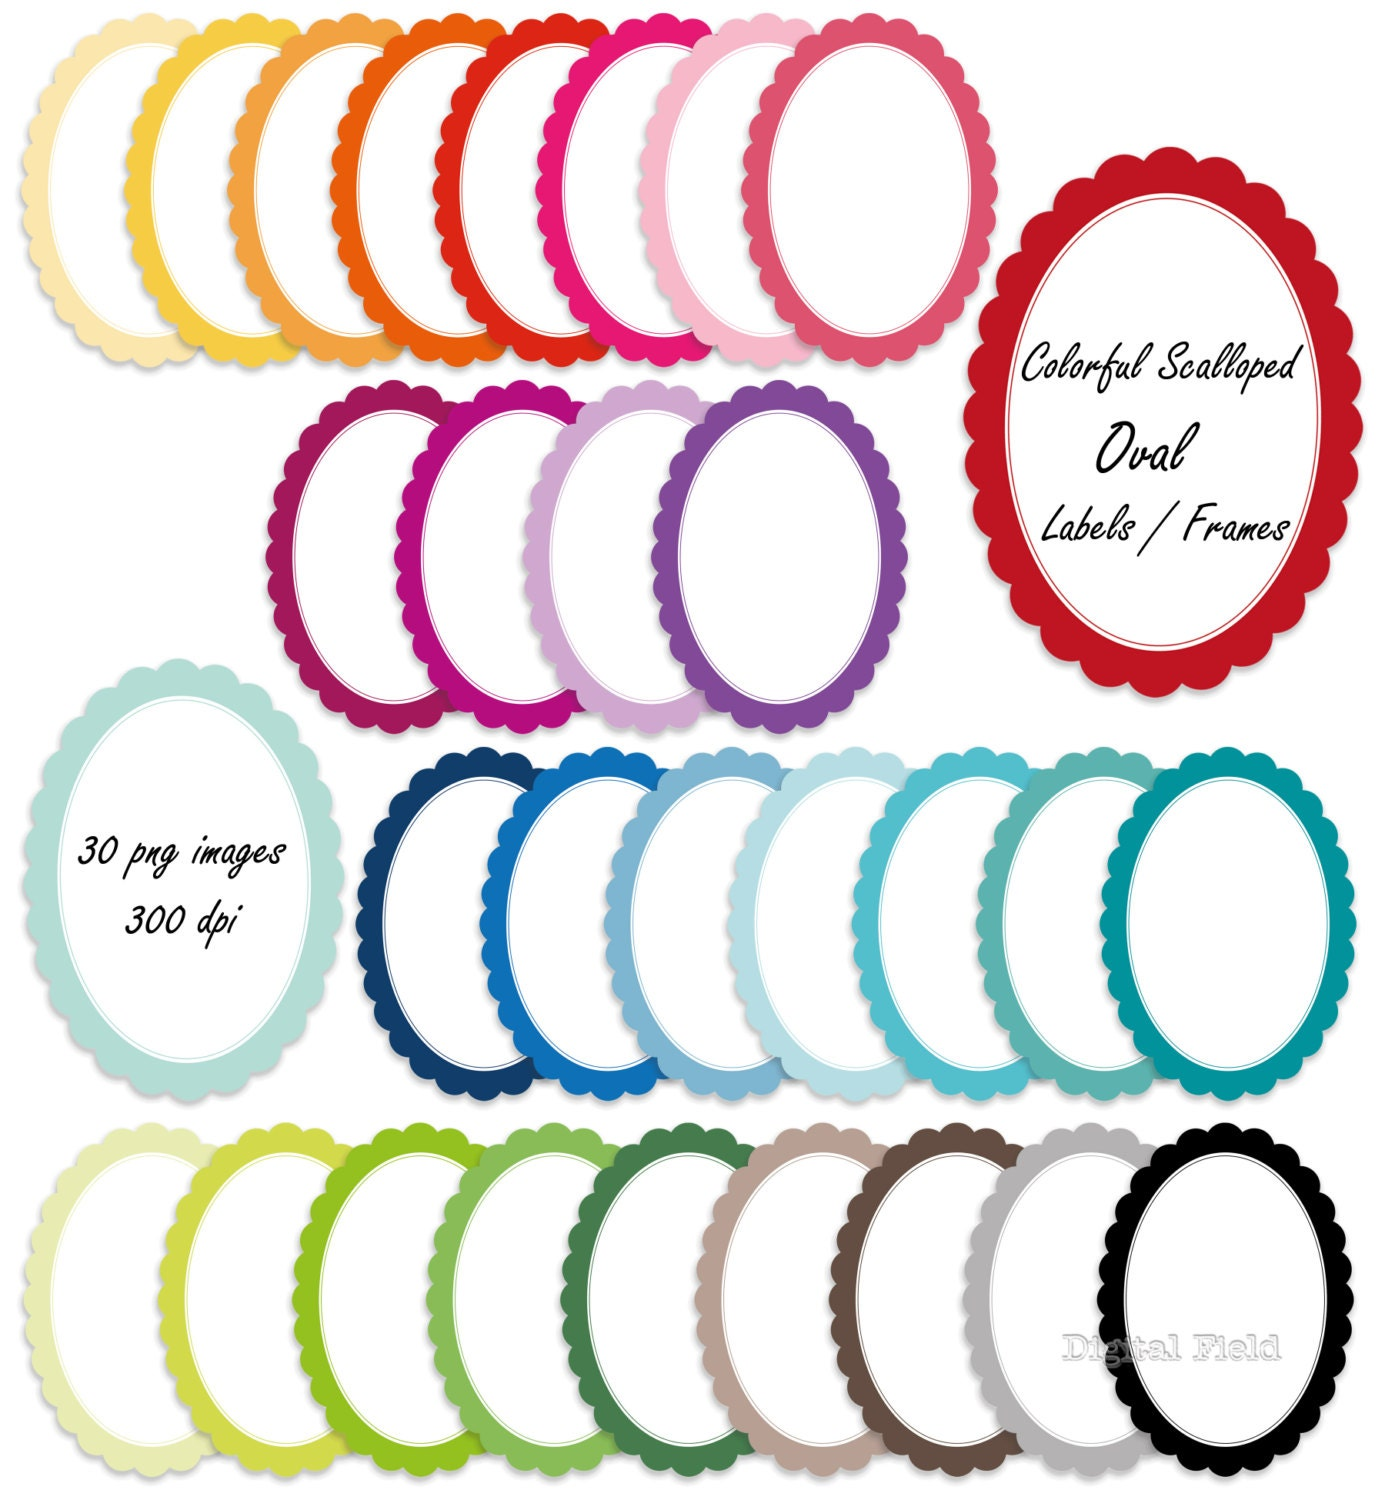 Colorful scalloped oval labels / frames clip art set